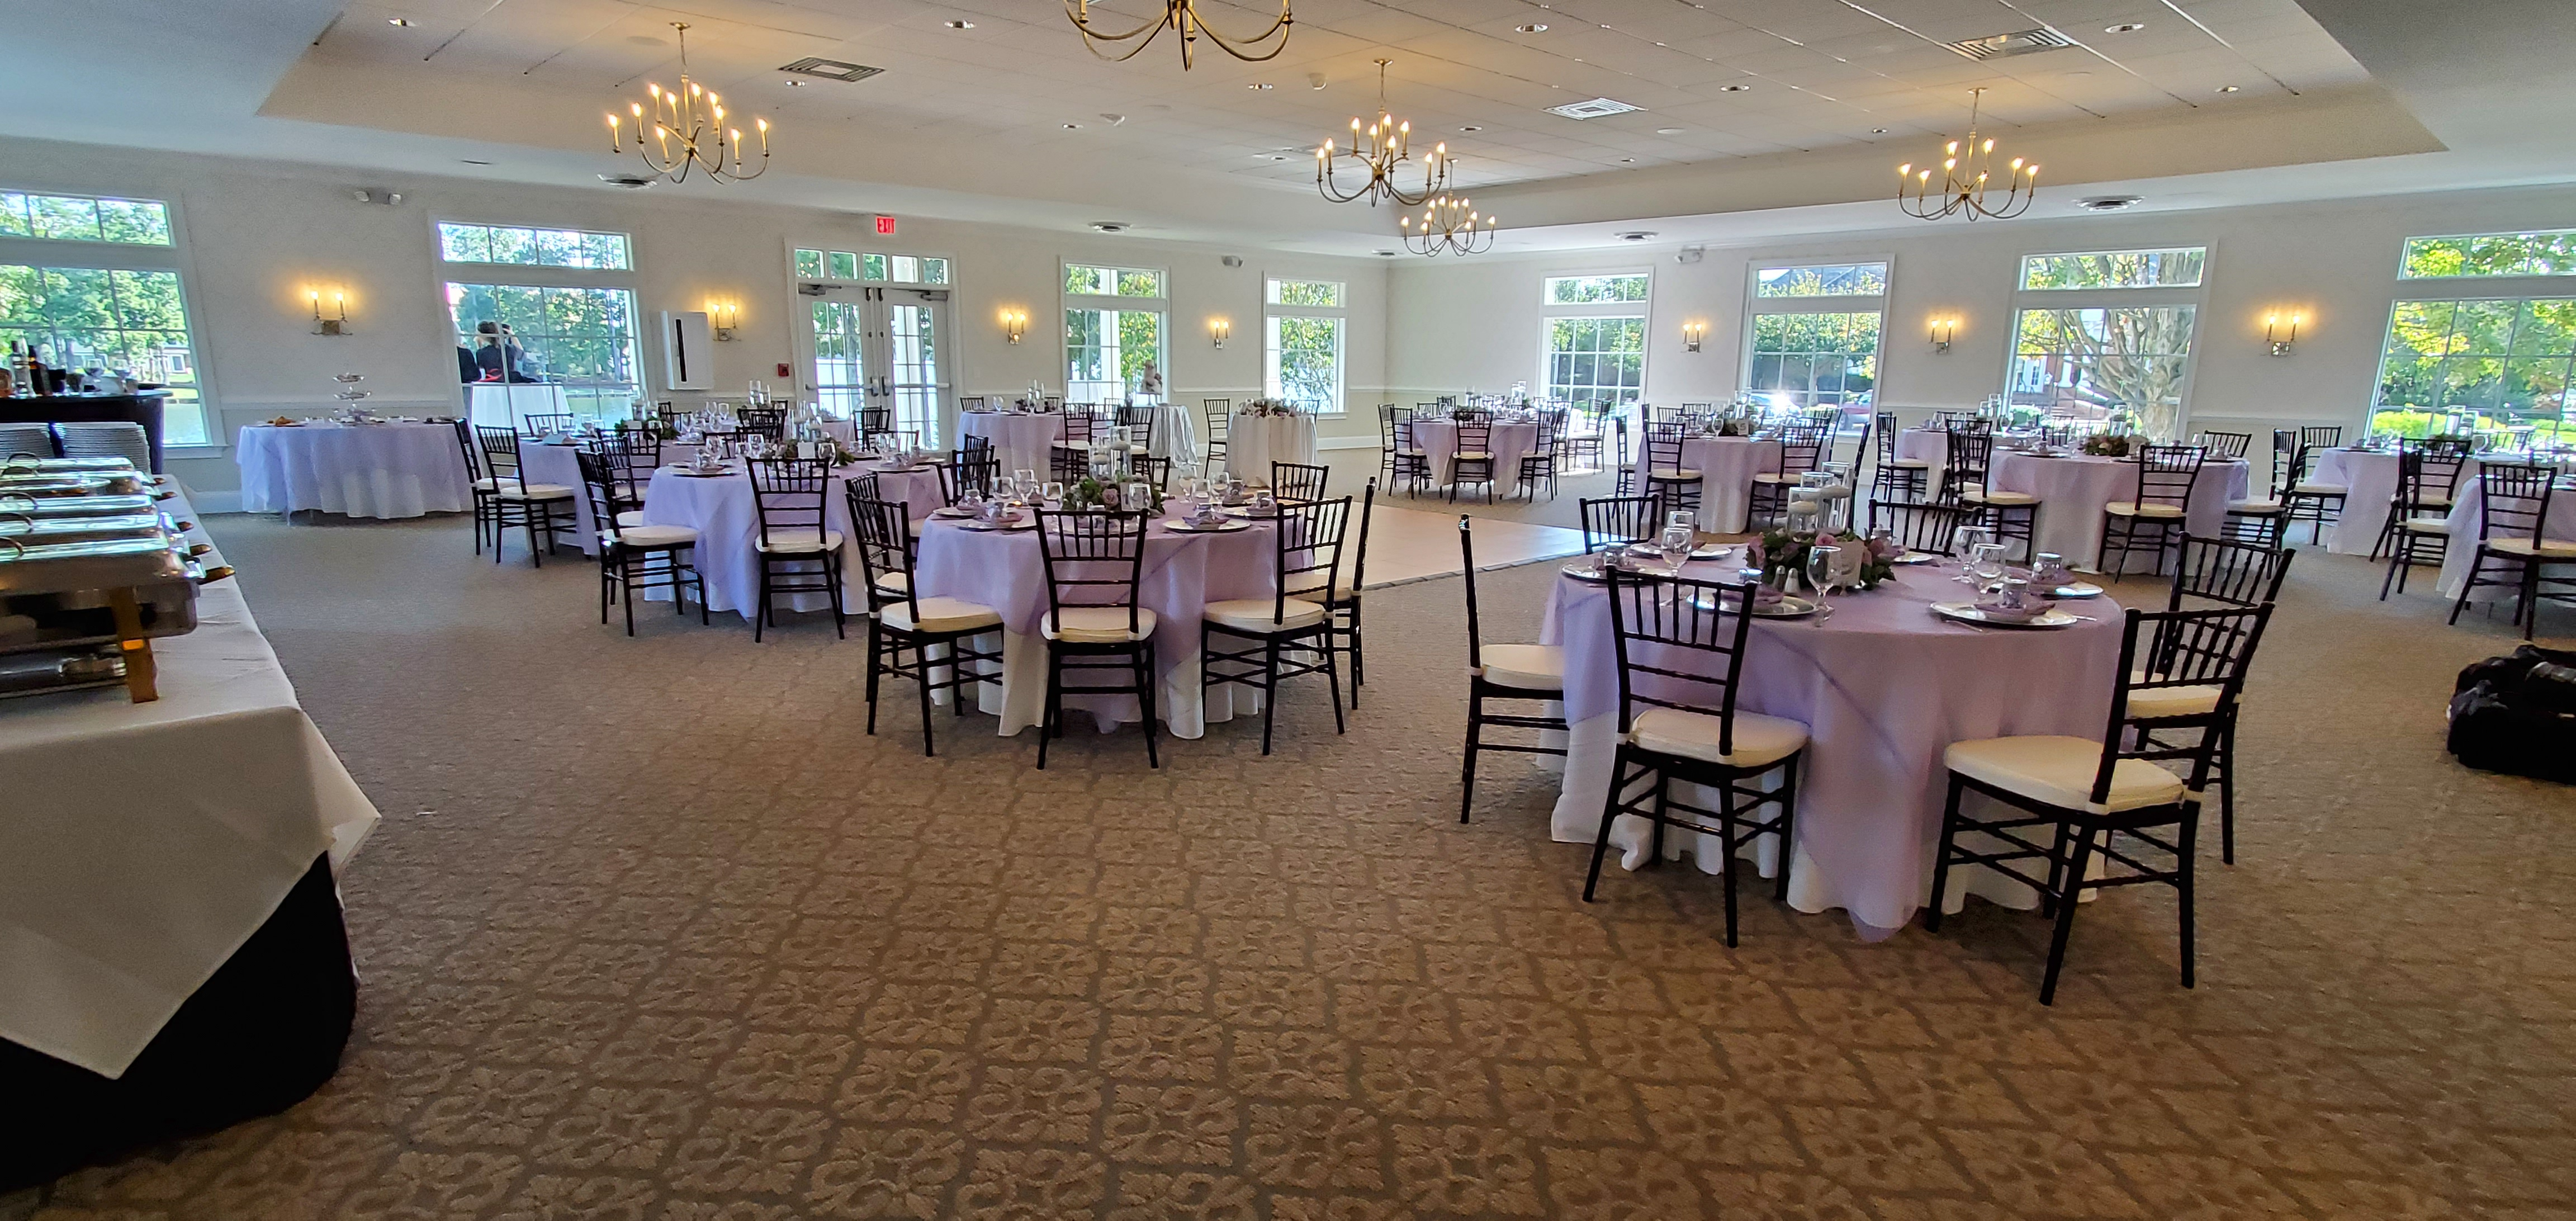 Fawn Lake Country Club event space in Washington DC, Maryland, Virginia, DC Area